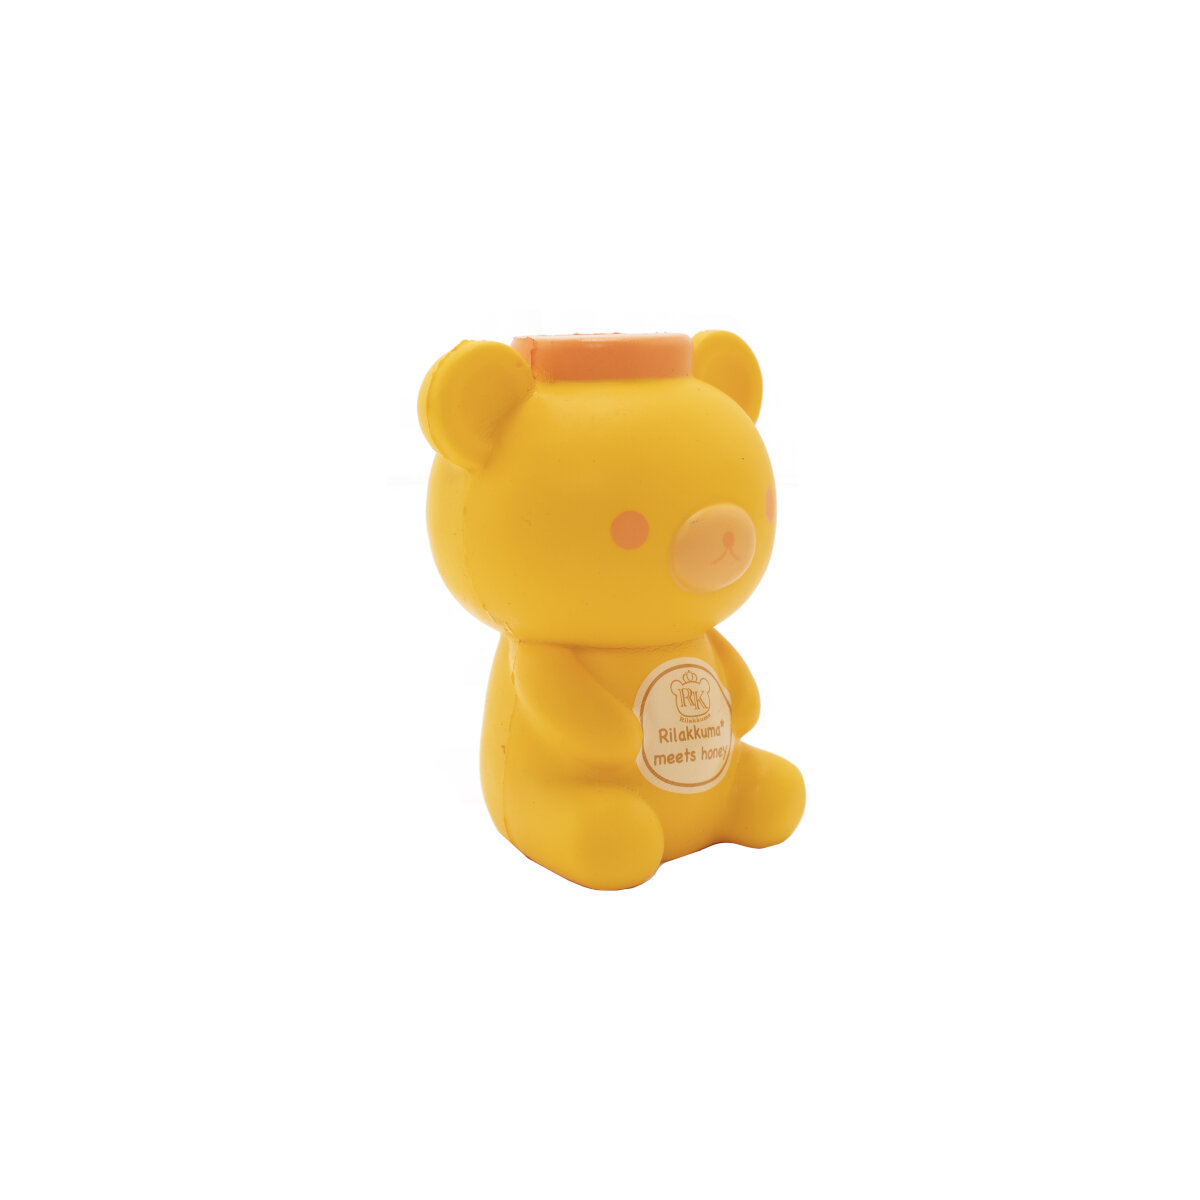 image Squishy-Rilakkuma-Honey-Jar-Plush-Main-Image